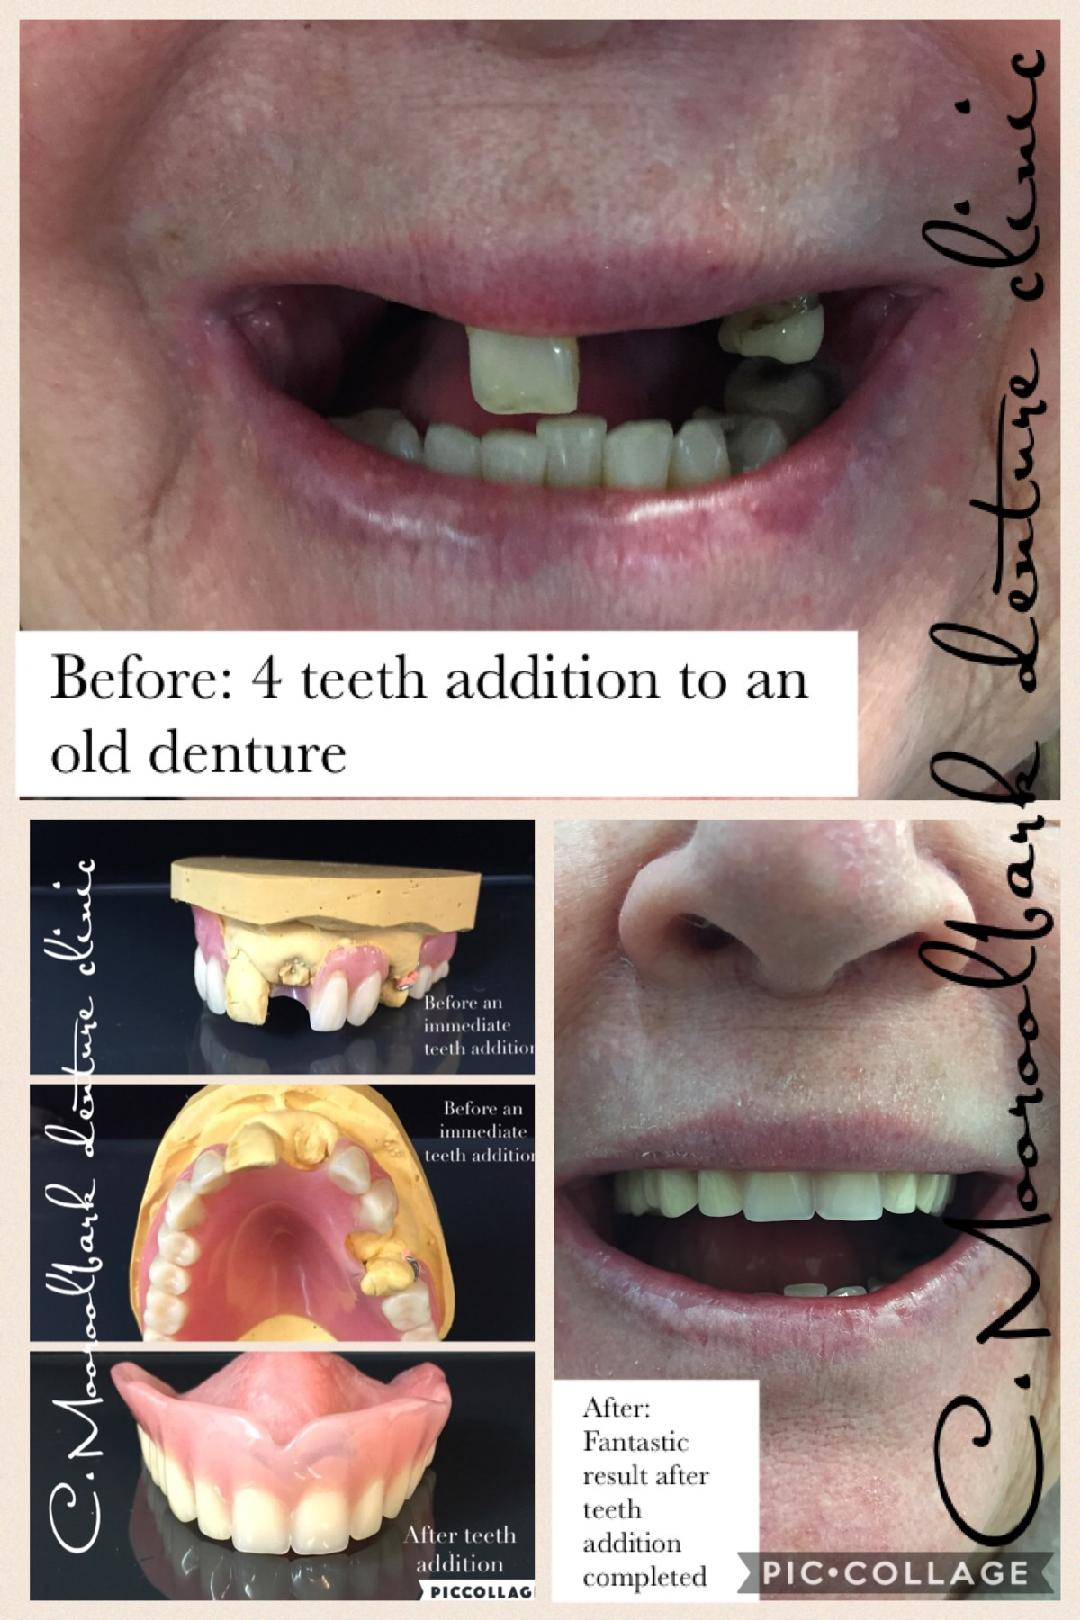 Teeth Addition to Partial Upper denture